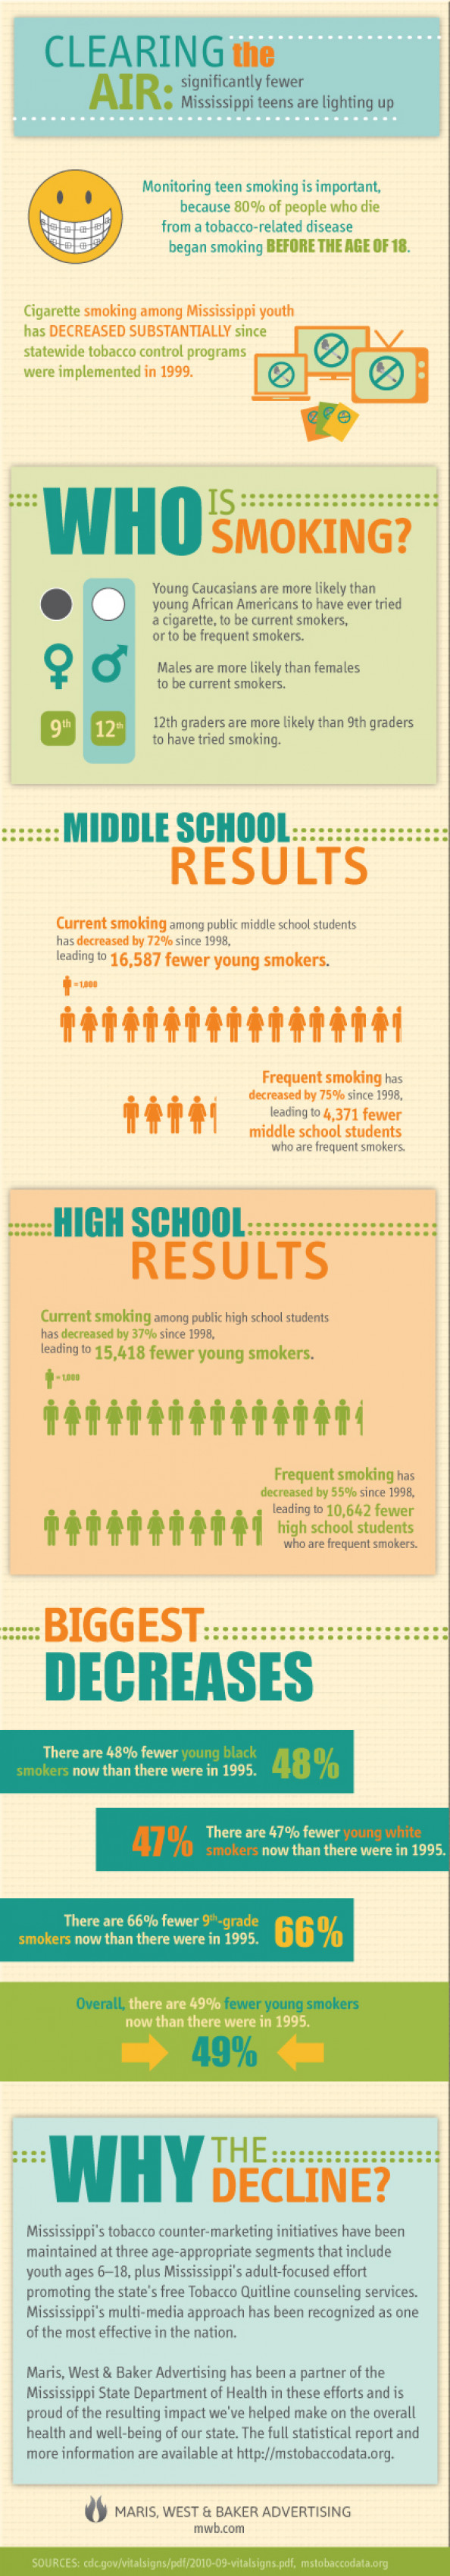 Youth Smoking Declines in Mississippi Infographic